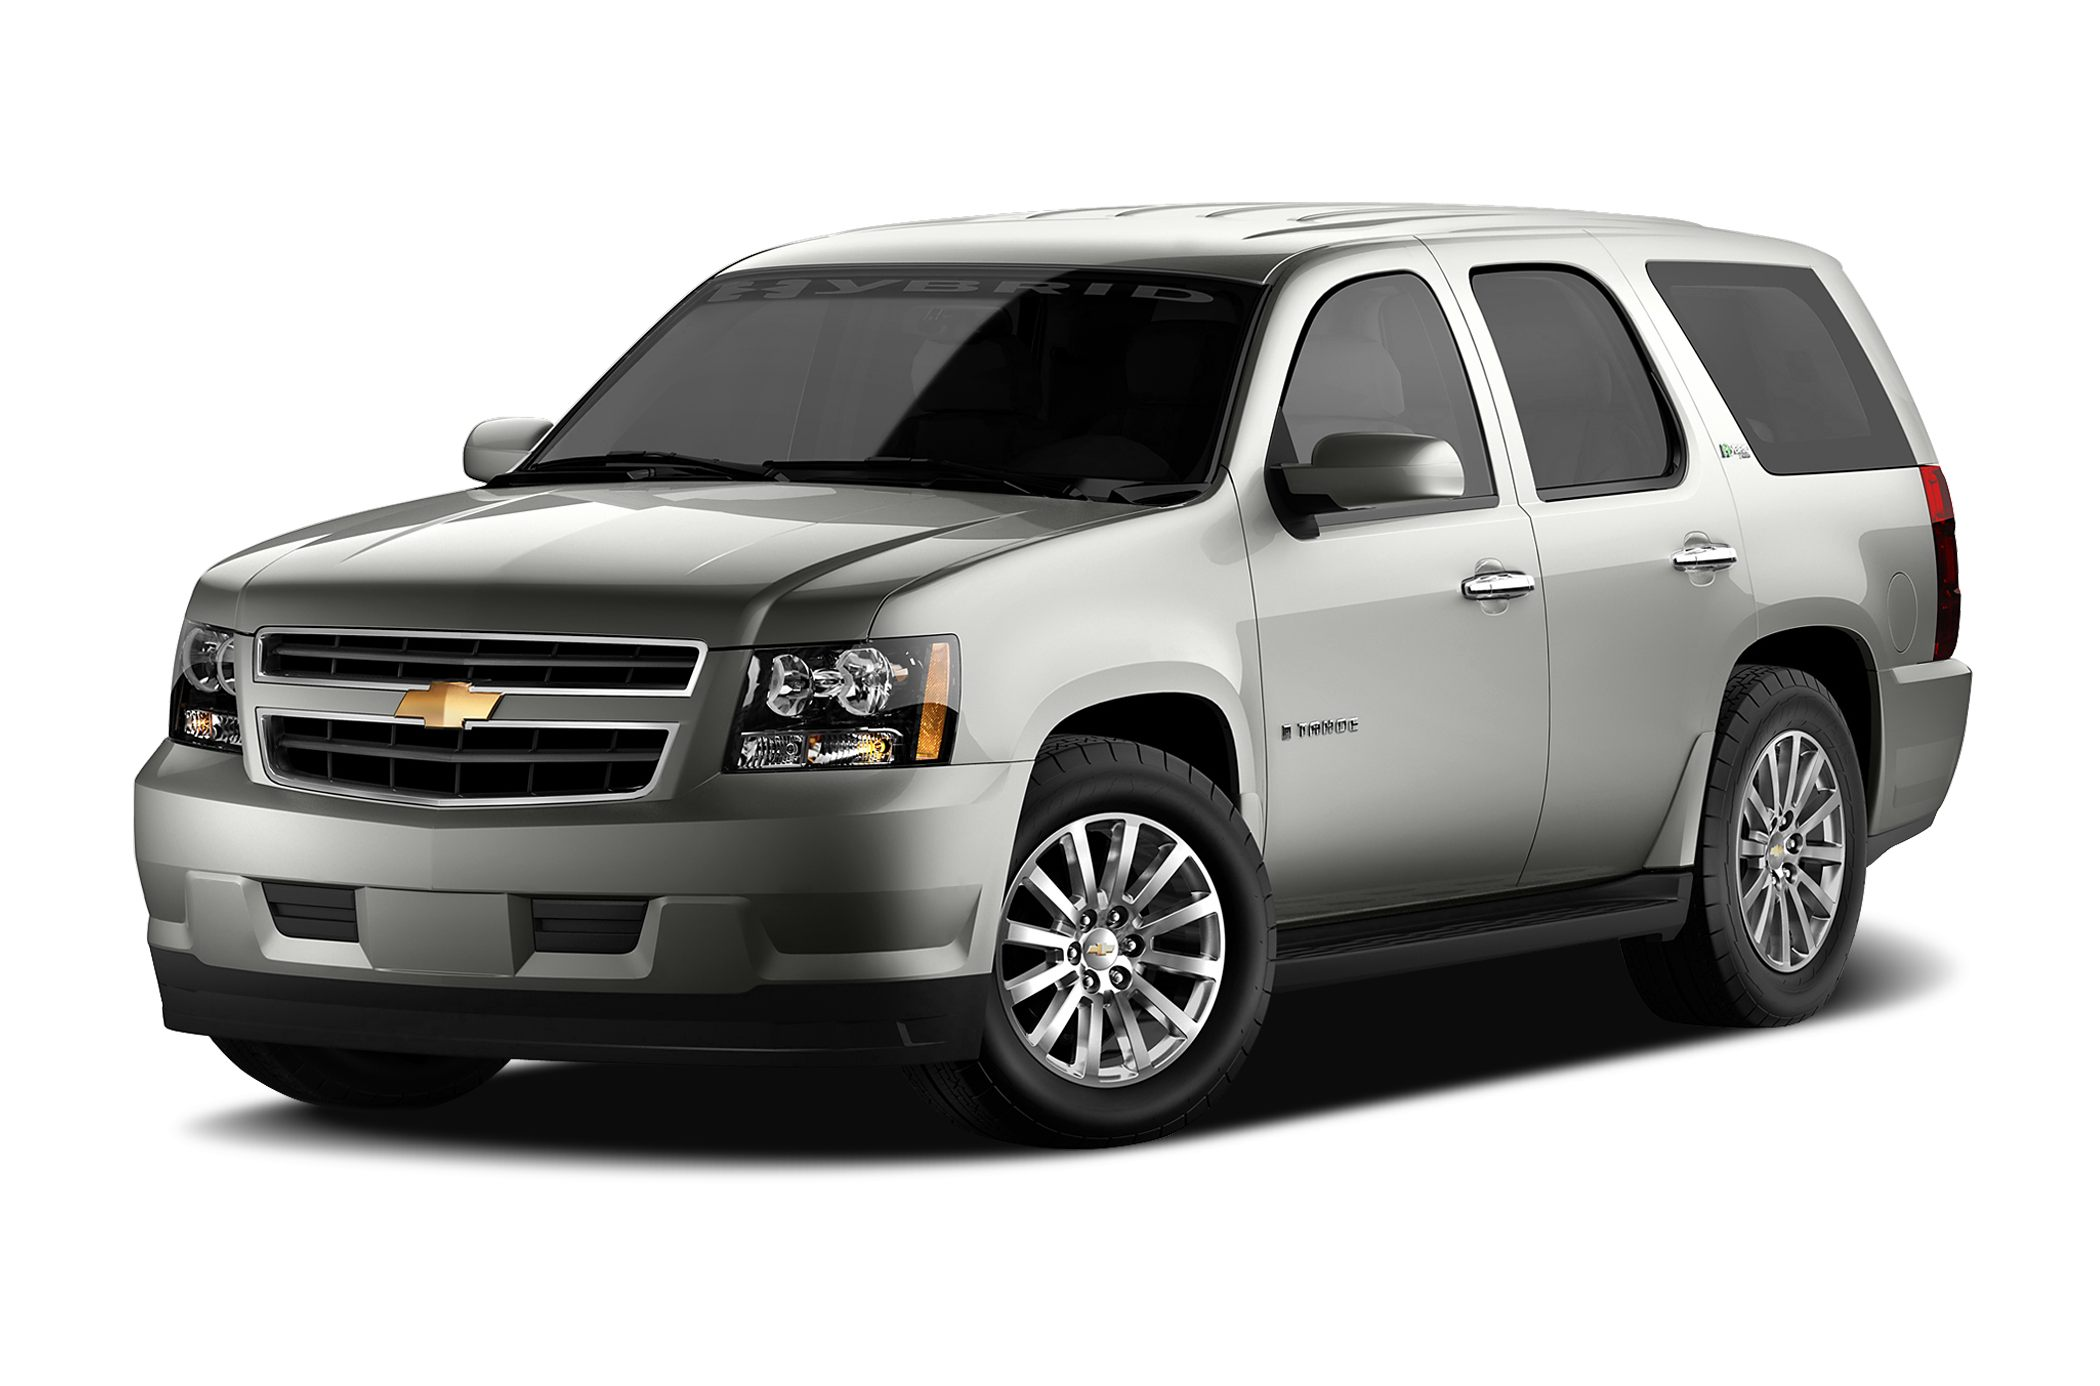 2008 Chevrolet Tahoe Hybrid SUV for sale in Rayville for $19,000 with 127,531 miles.